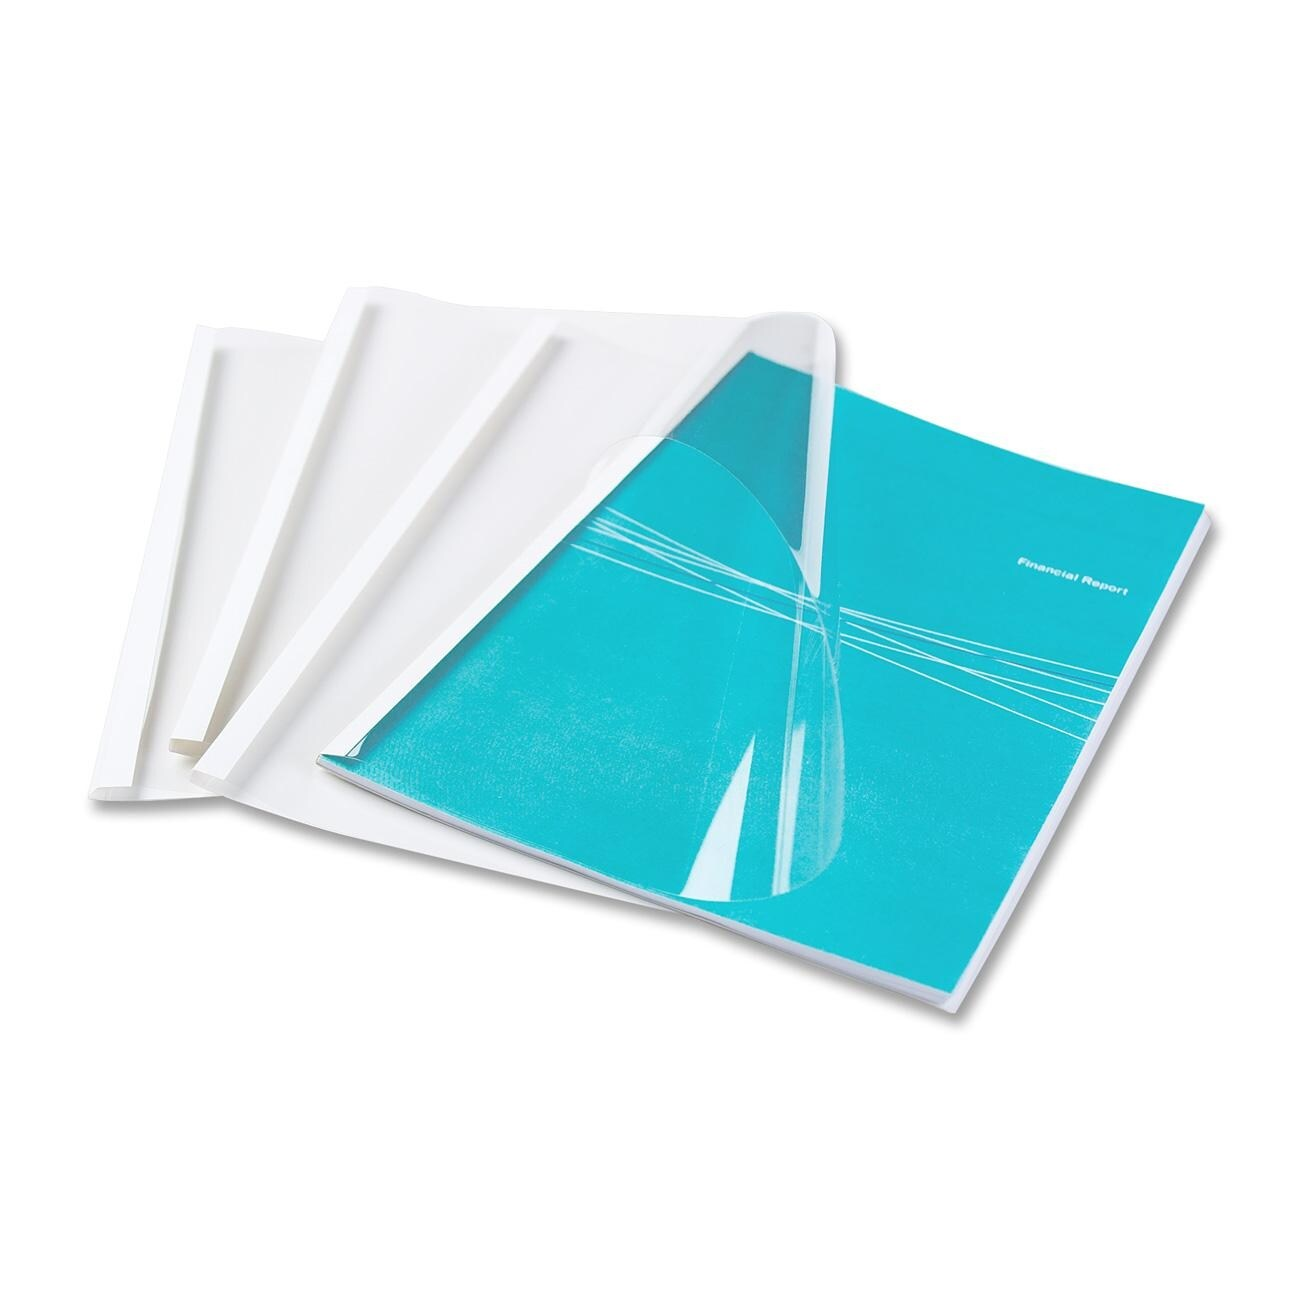 """Fellowes Thermal Presentation Covers - 1/4"""", 60 sheets, White"""